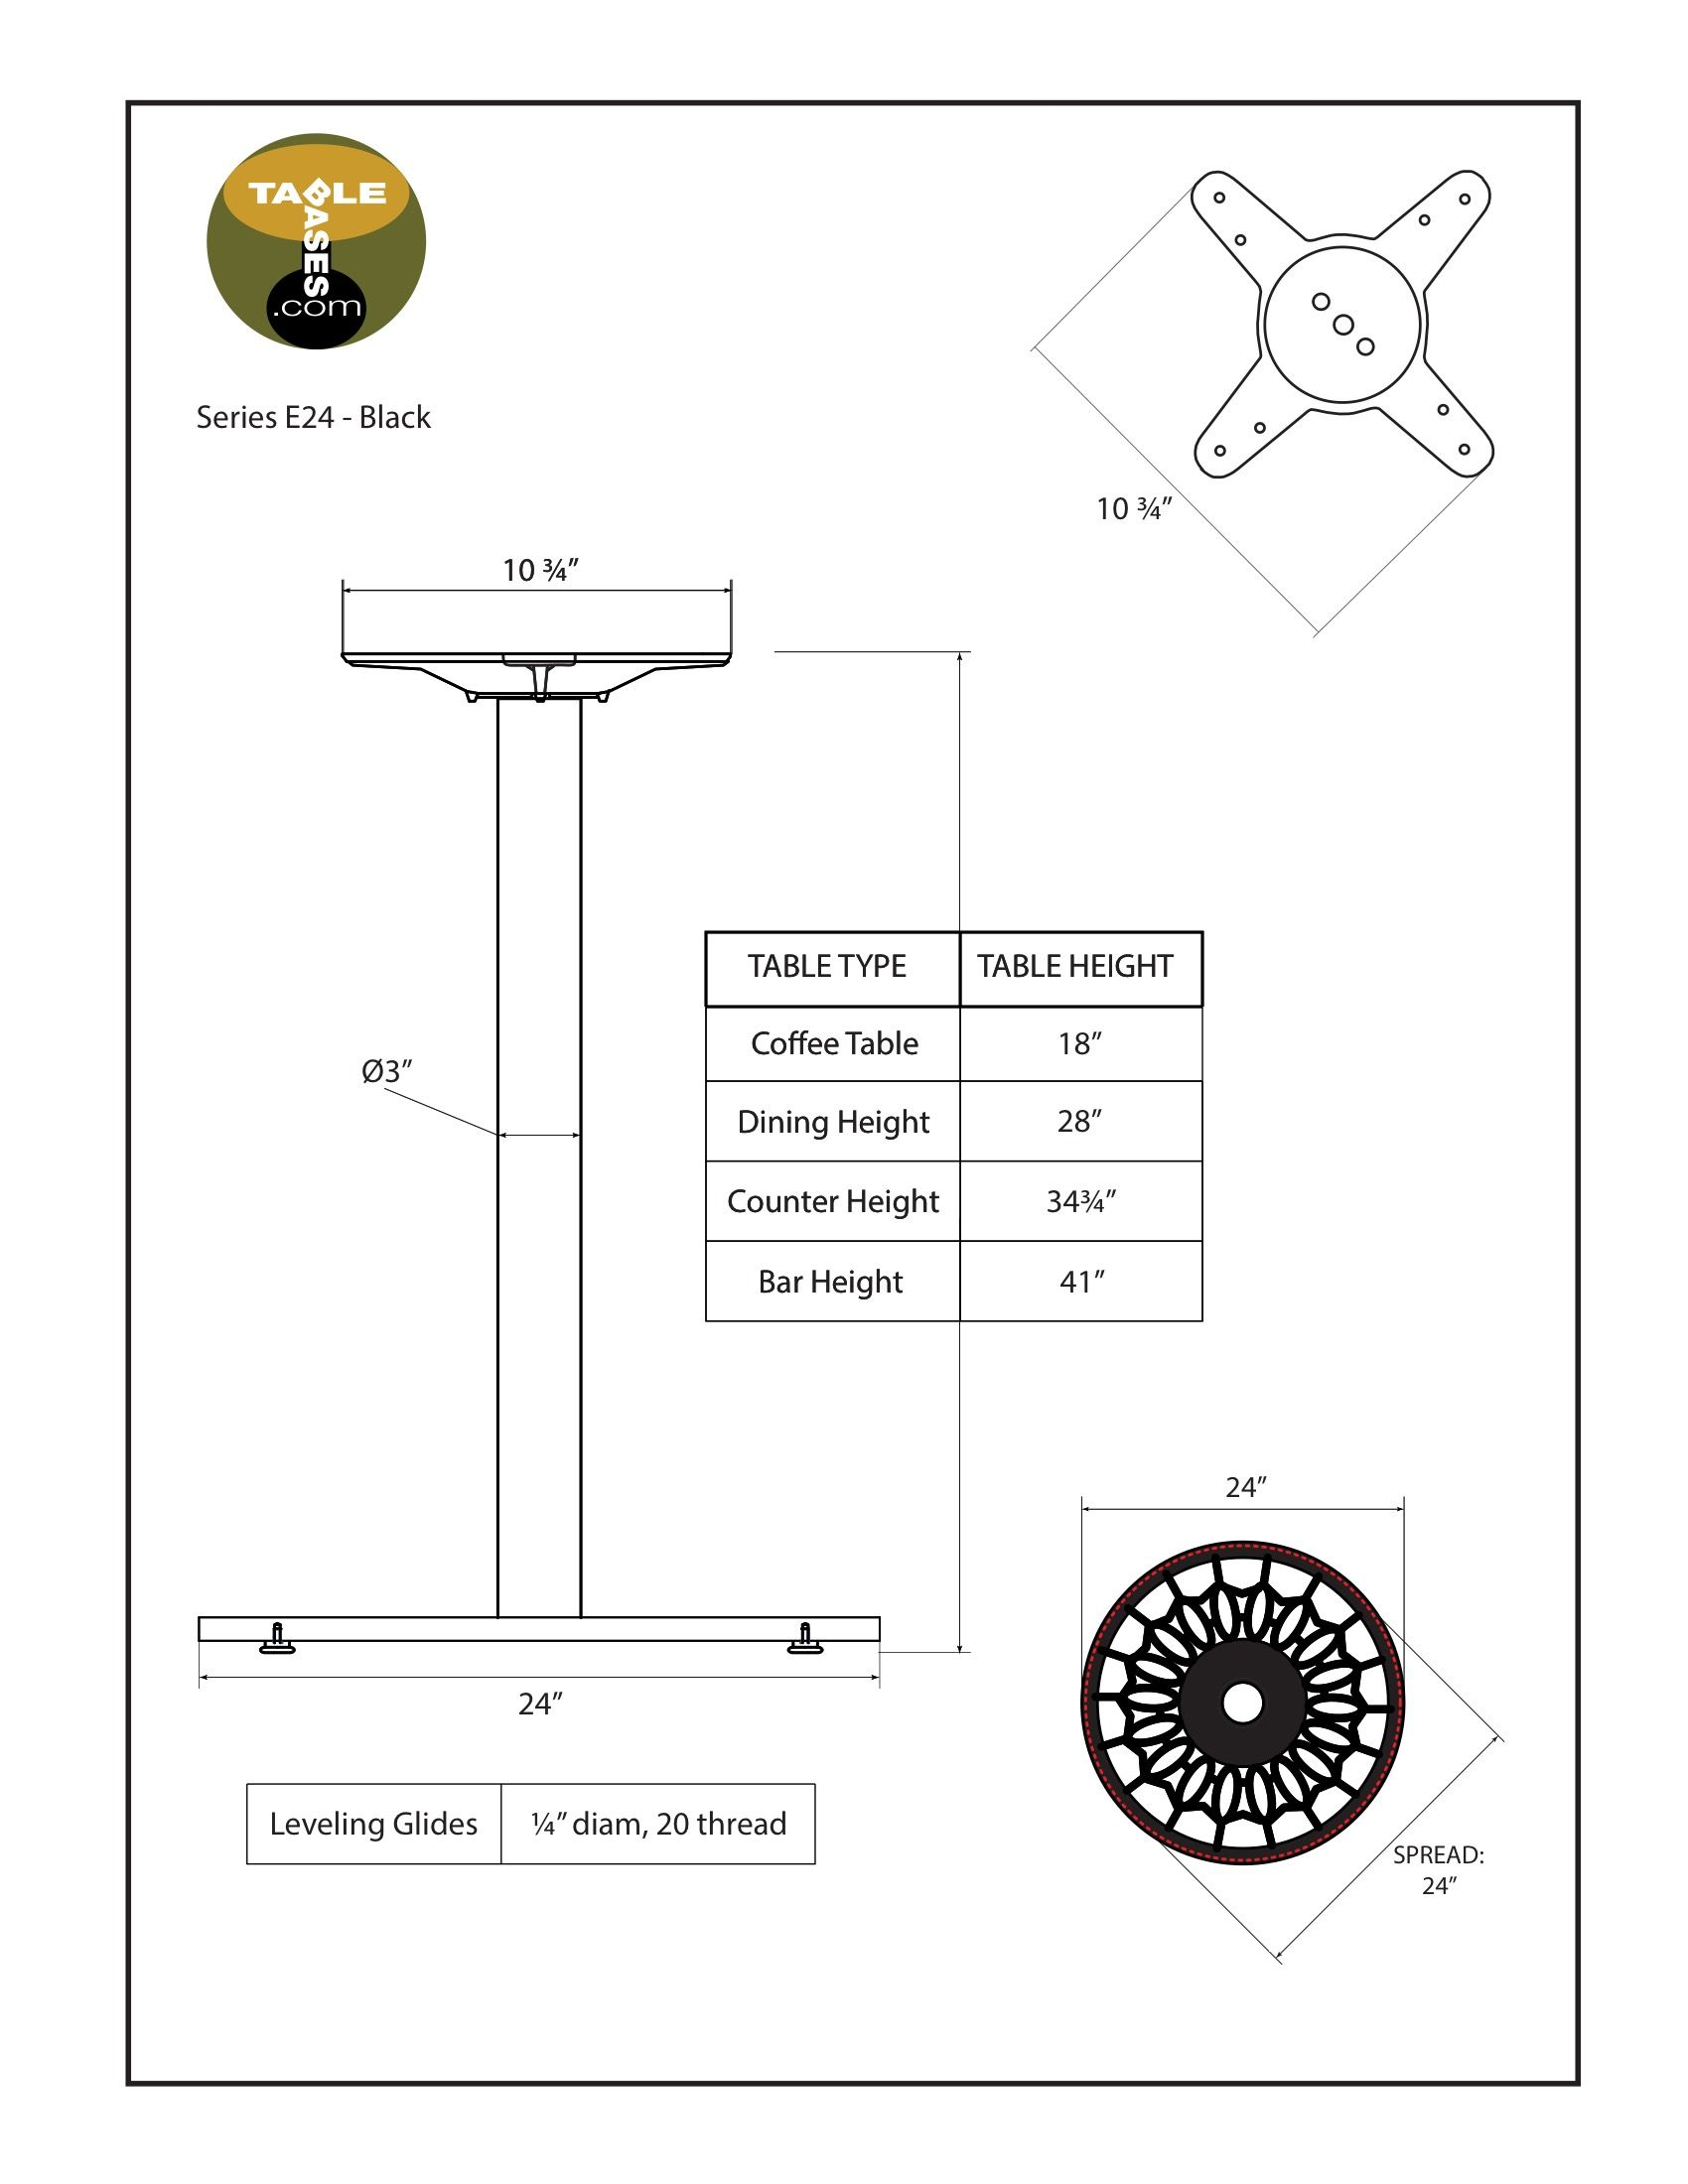 E24 Black Table Base - Specifications